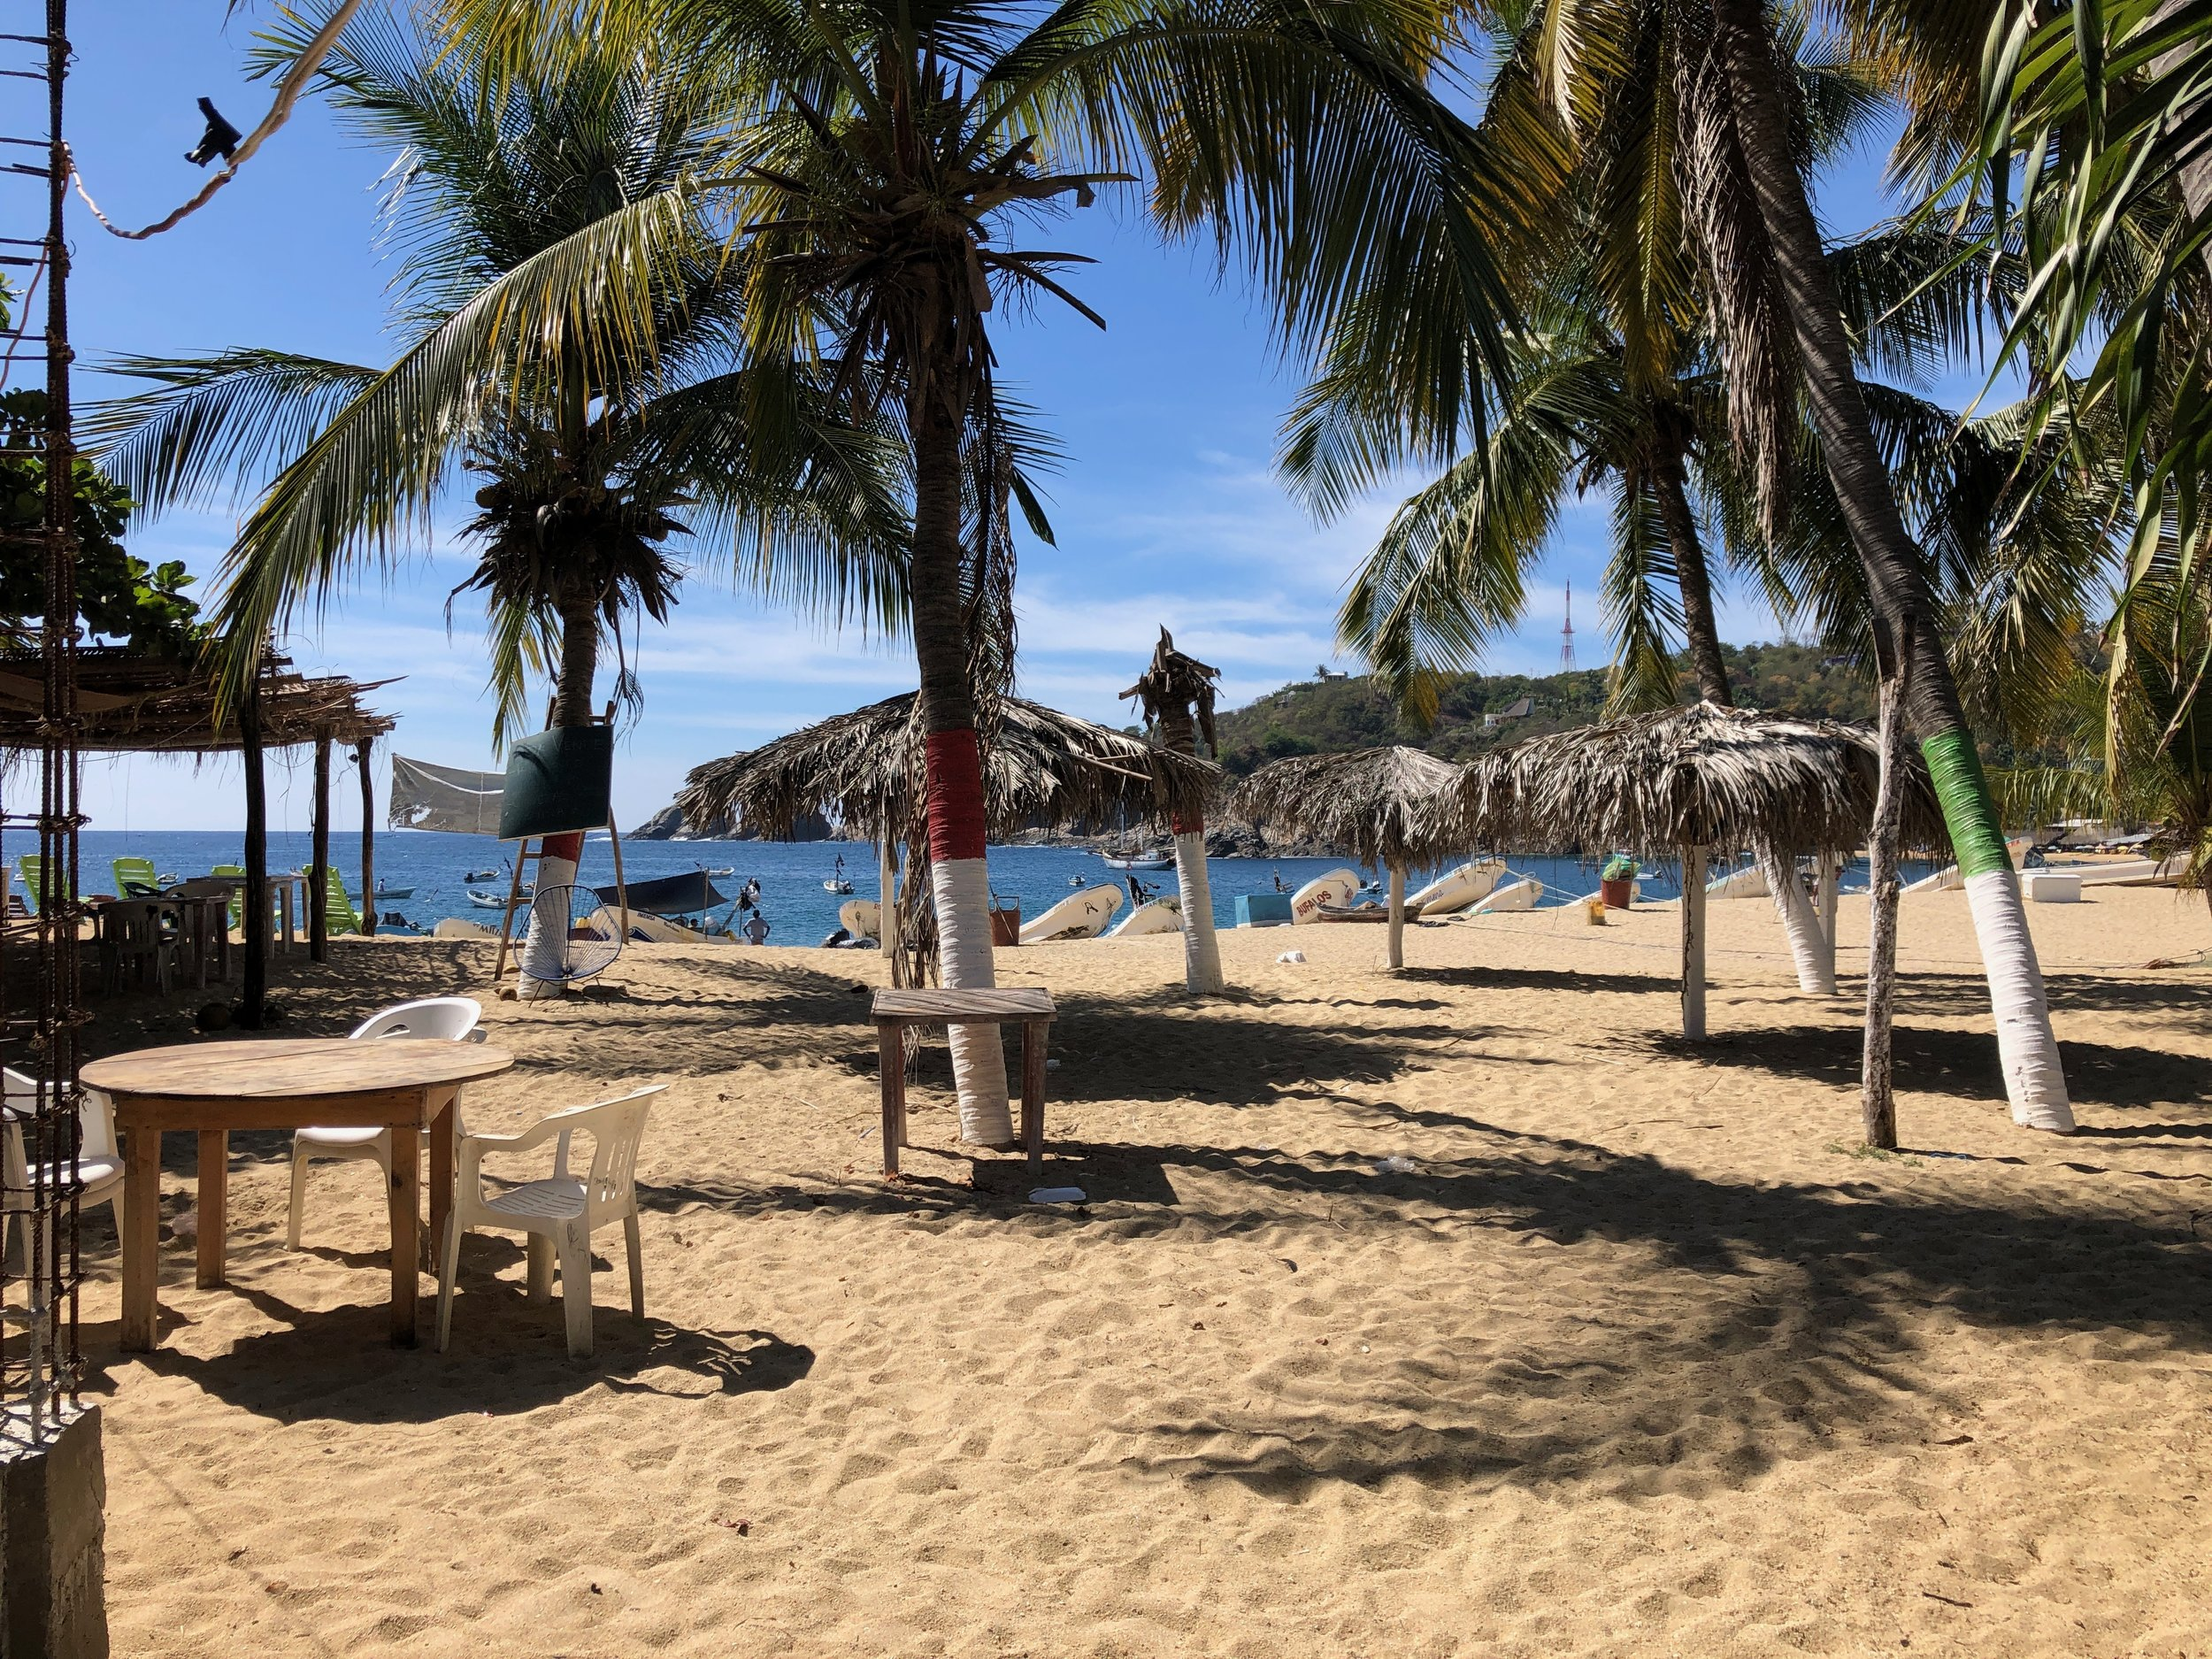 The beach in Puerto Angel